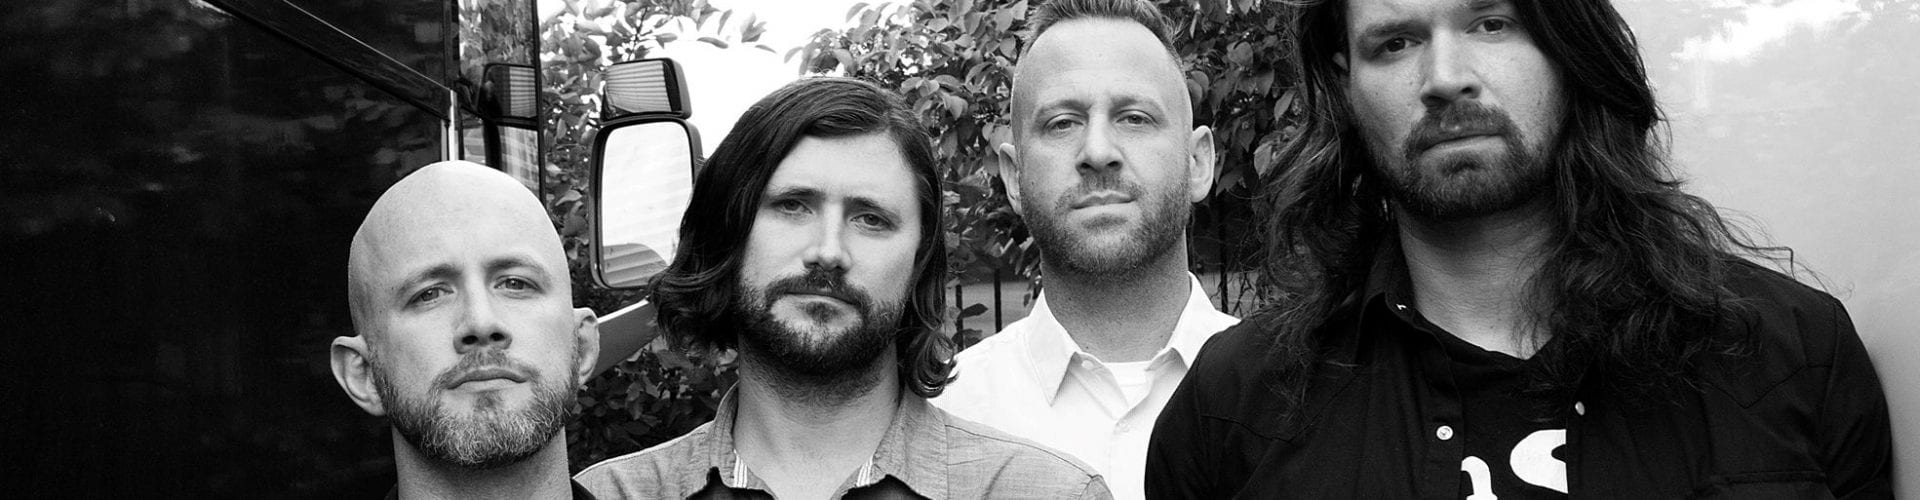 Taking Back Sunday To Celebrate 20 Years With Compilation Album, Tour